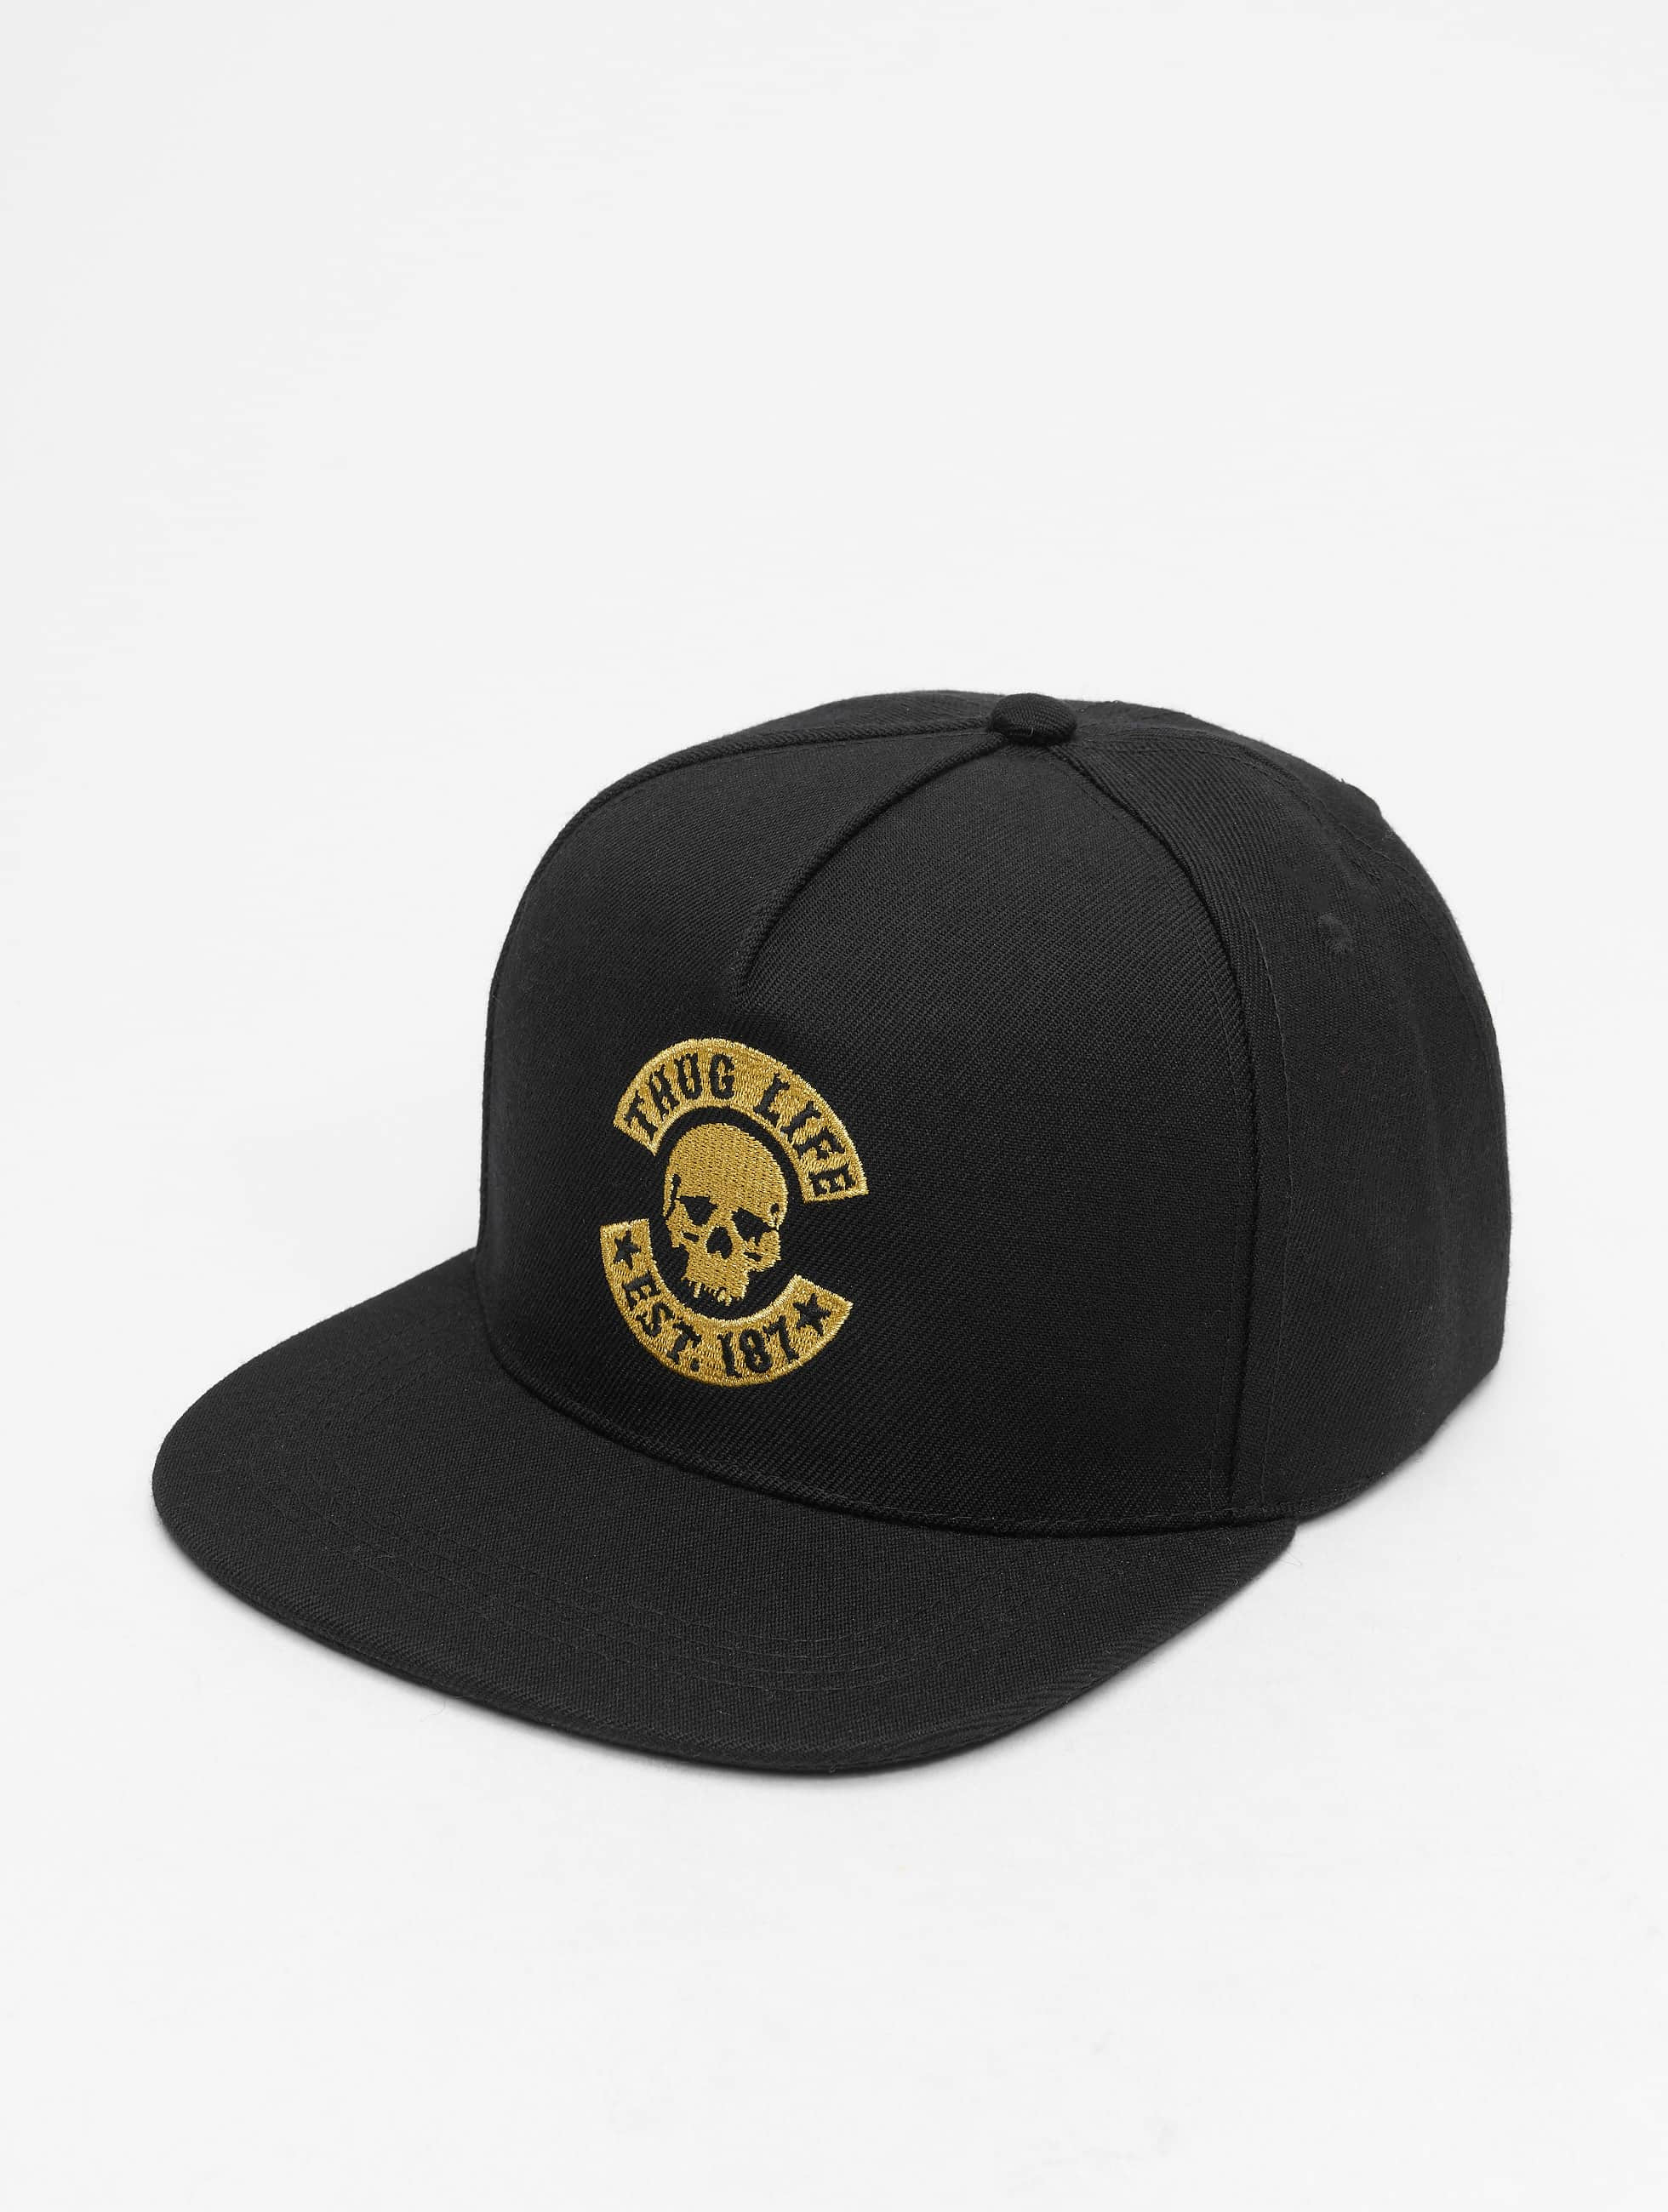 Thug Life / Snapback Cap B.Golden in black Adjustable